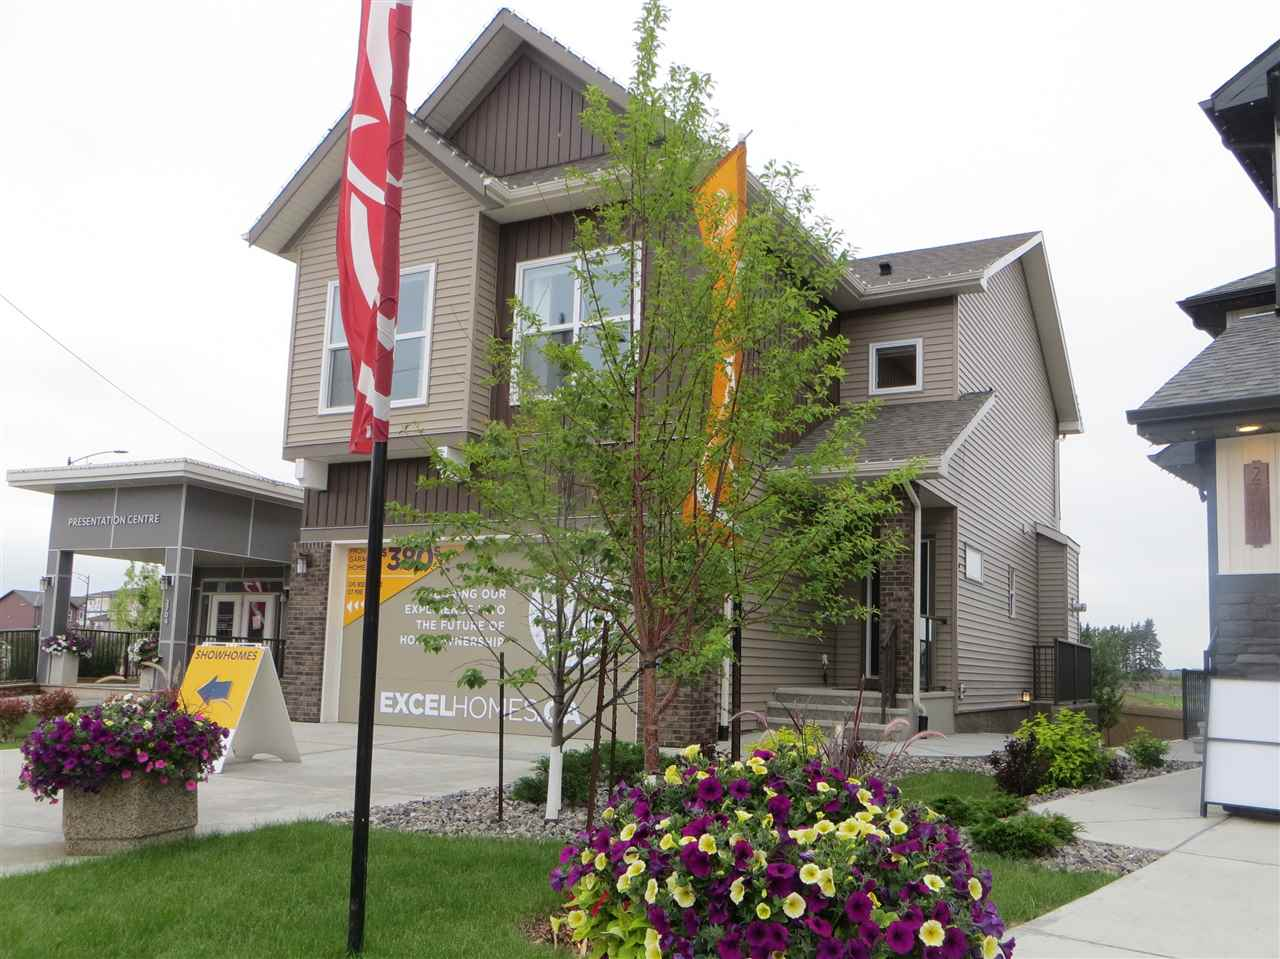 Interested in having the builder make your mortgage payments? Take advantage of today's prices and have builder leaseback from you. This showhome is loaded with extras, over 2000 sq ft plus finished basement w/ separate exterior entrance!  9' ceilings on main and upper floor really opens up the living space.  The chef's kitchen w/ clean lines features pot and pans drawers, island, granite counters of course, pantry, crown moulding and equipped with stainless steel appliances.  Deck off the dining room has a gas line roughed in as well for bbq's!  Hickory hardwood floors, tile flooring, gas fireplace and pot lights are just some of other upgrades.  The upper level has a bonus room, 3 bedrooms including the master bedroom with walk in closet and ensuite with his and her sinks.   Laundry area is also on the upper level for added convenience. Fully landscaped plus there is central A/C! Basement has a 4th bedroom, recreation room w/ wet bar and 3 piece bathroom w/ it's own entrance. Measured to RMS standards.